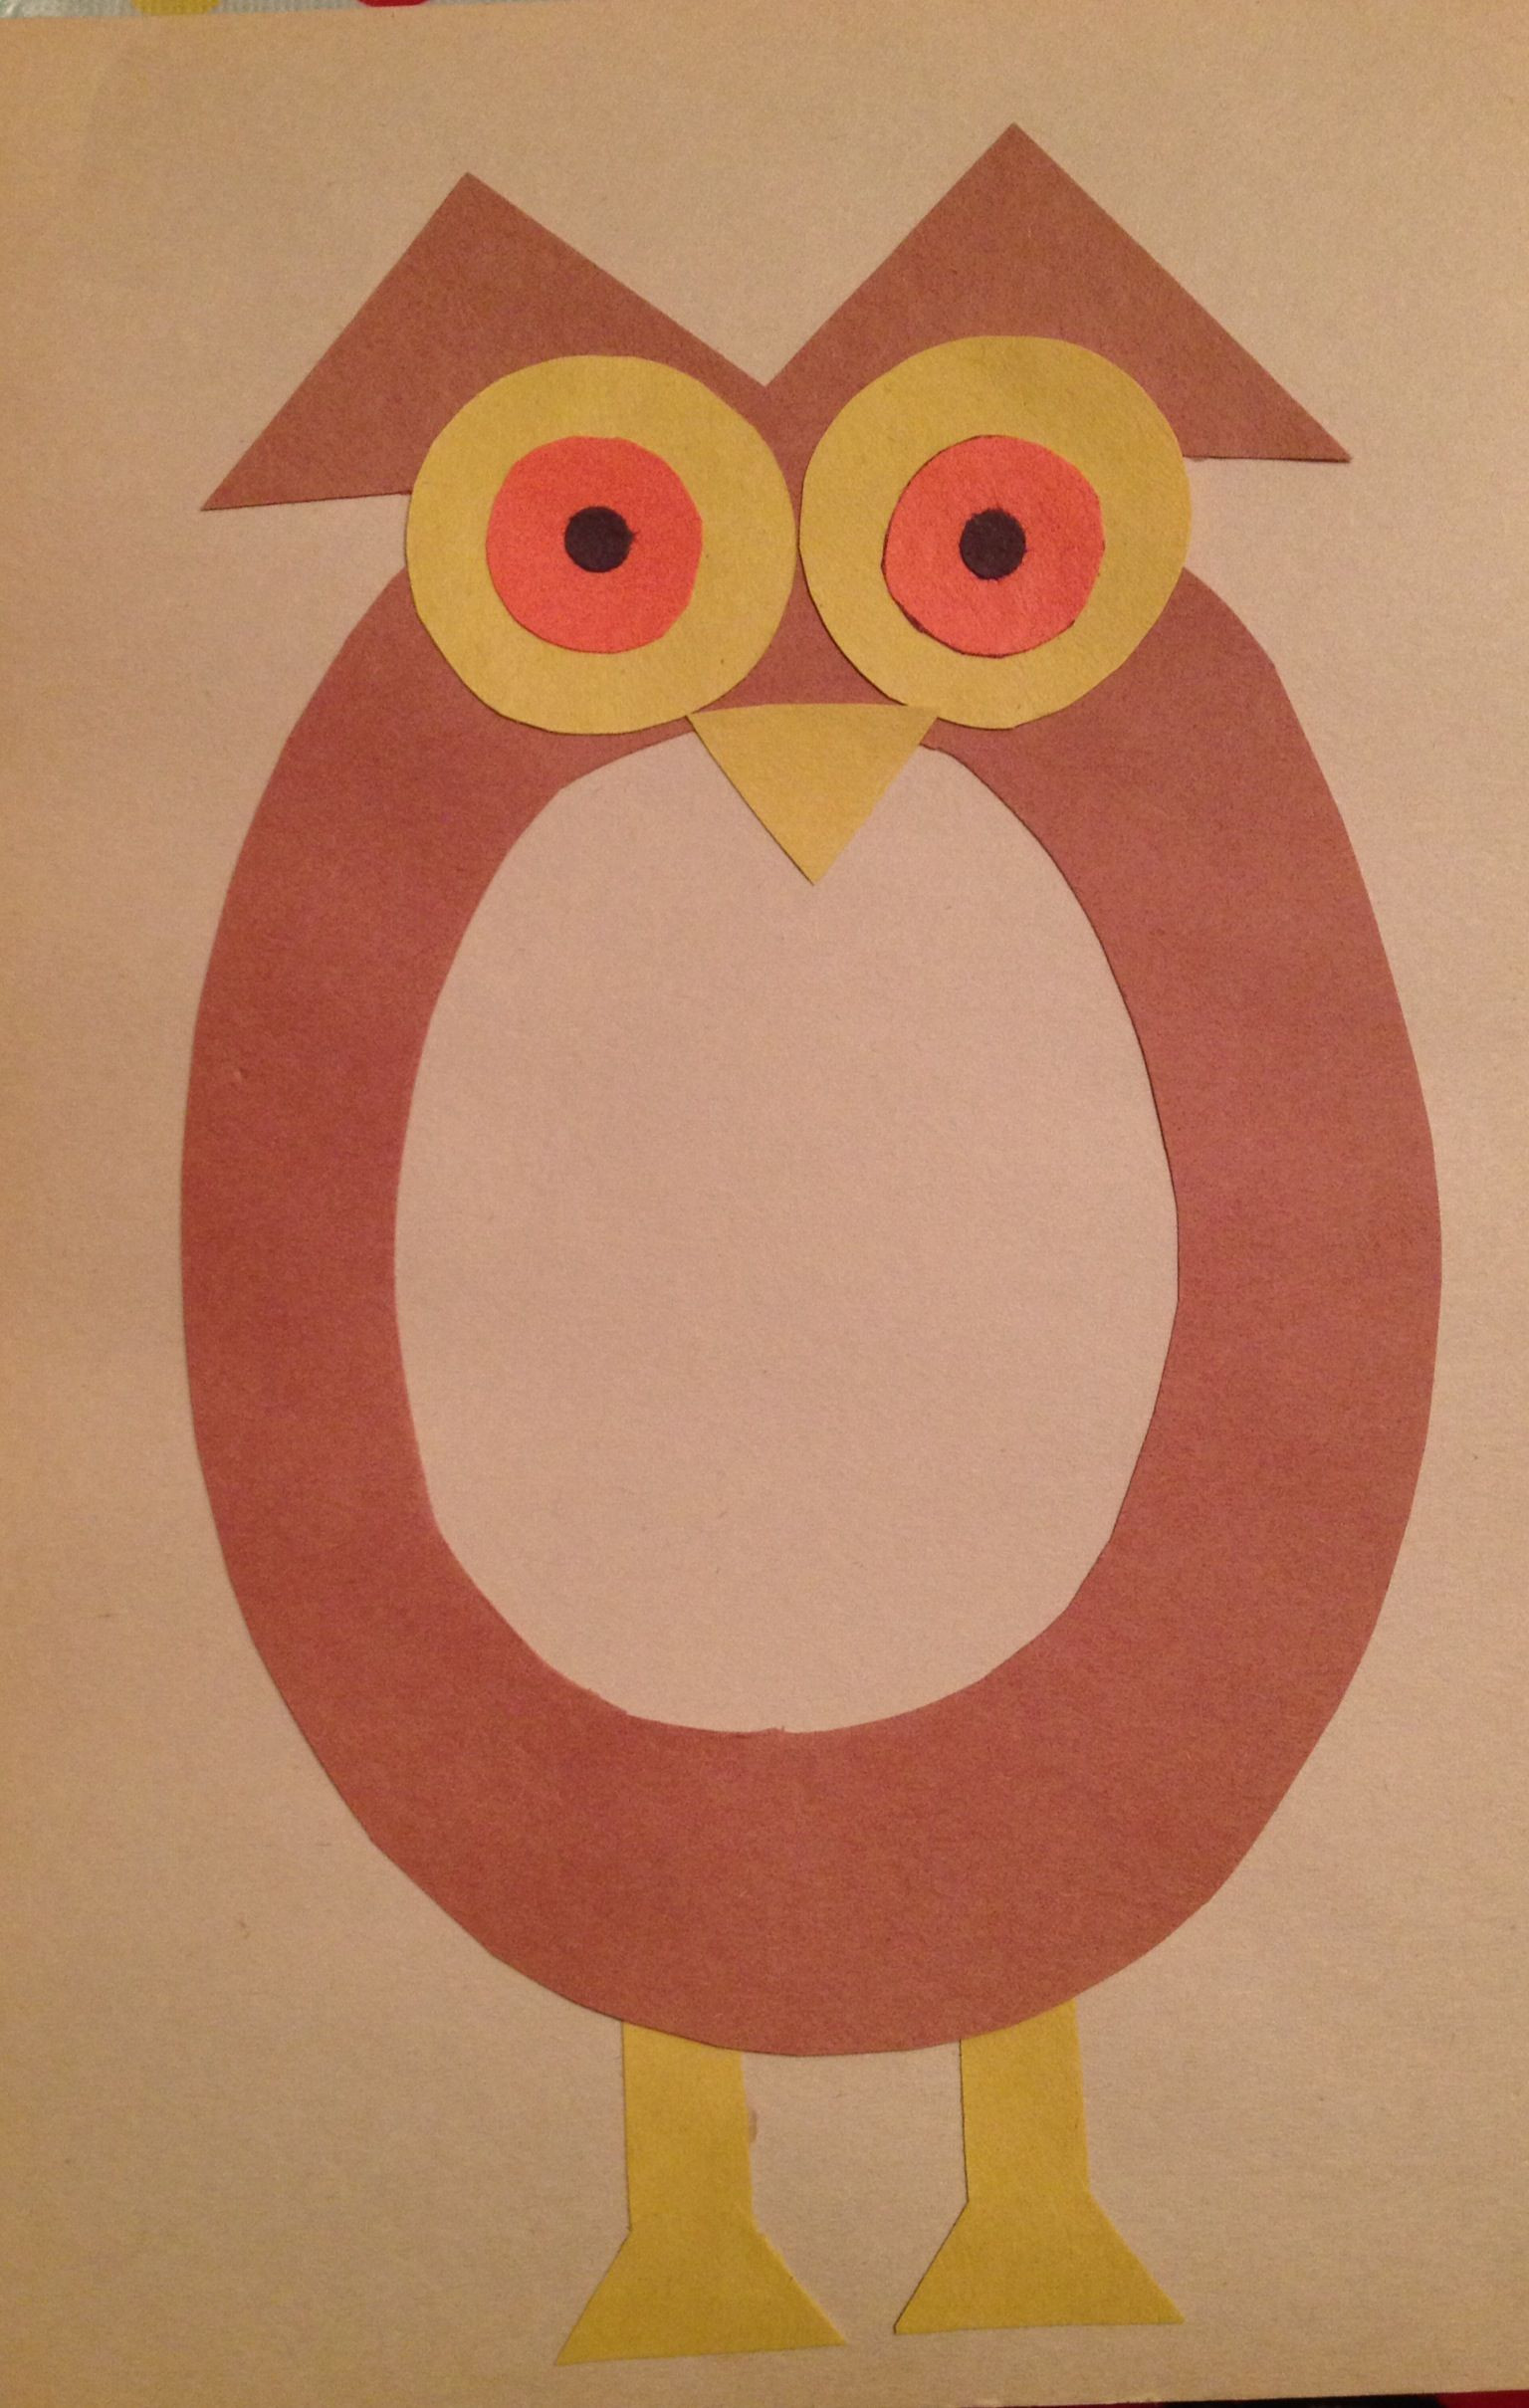 Best ideas about Crafts For Preschool Kids . Save or Pin Preschool letter O craft Now.